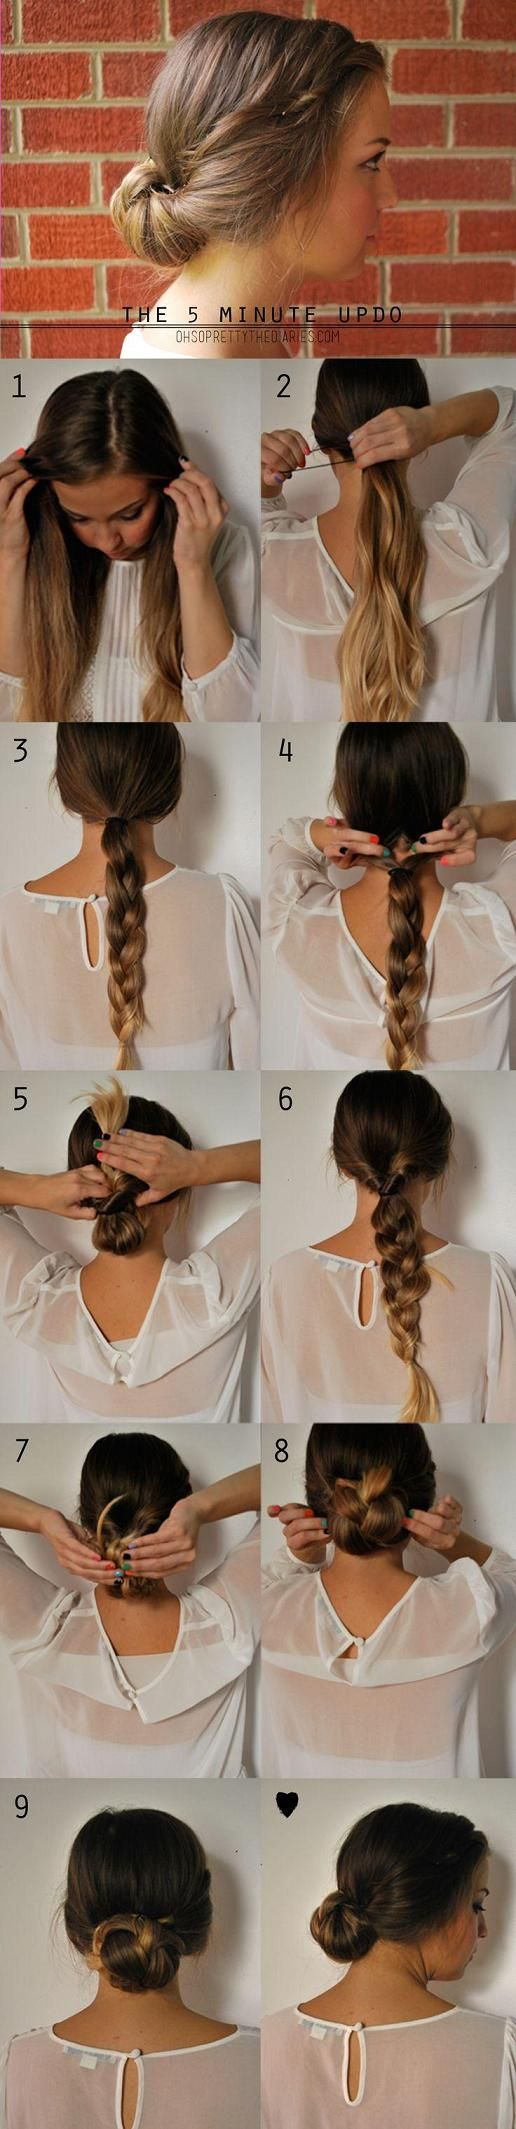 Easy updo hair pinterest hair tricks diy hair and updo